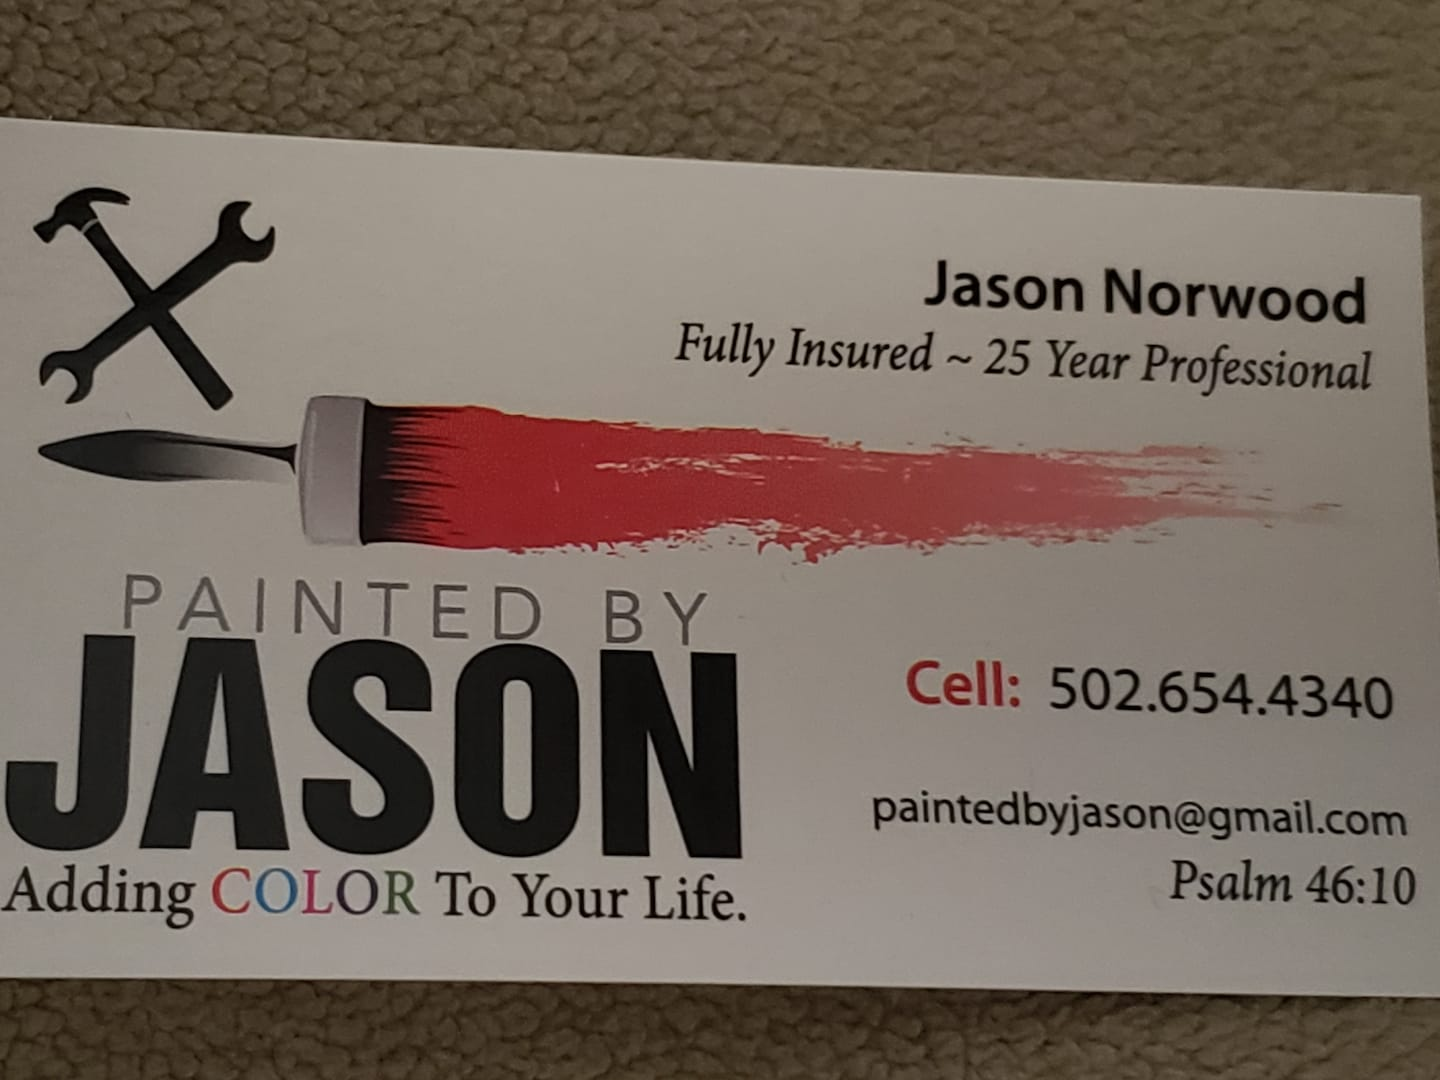 Painted by Jason